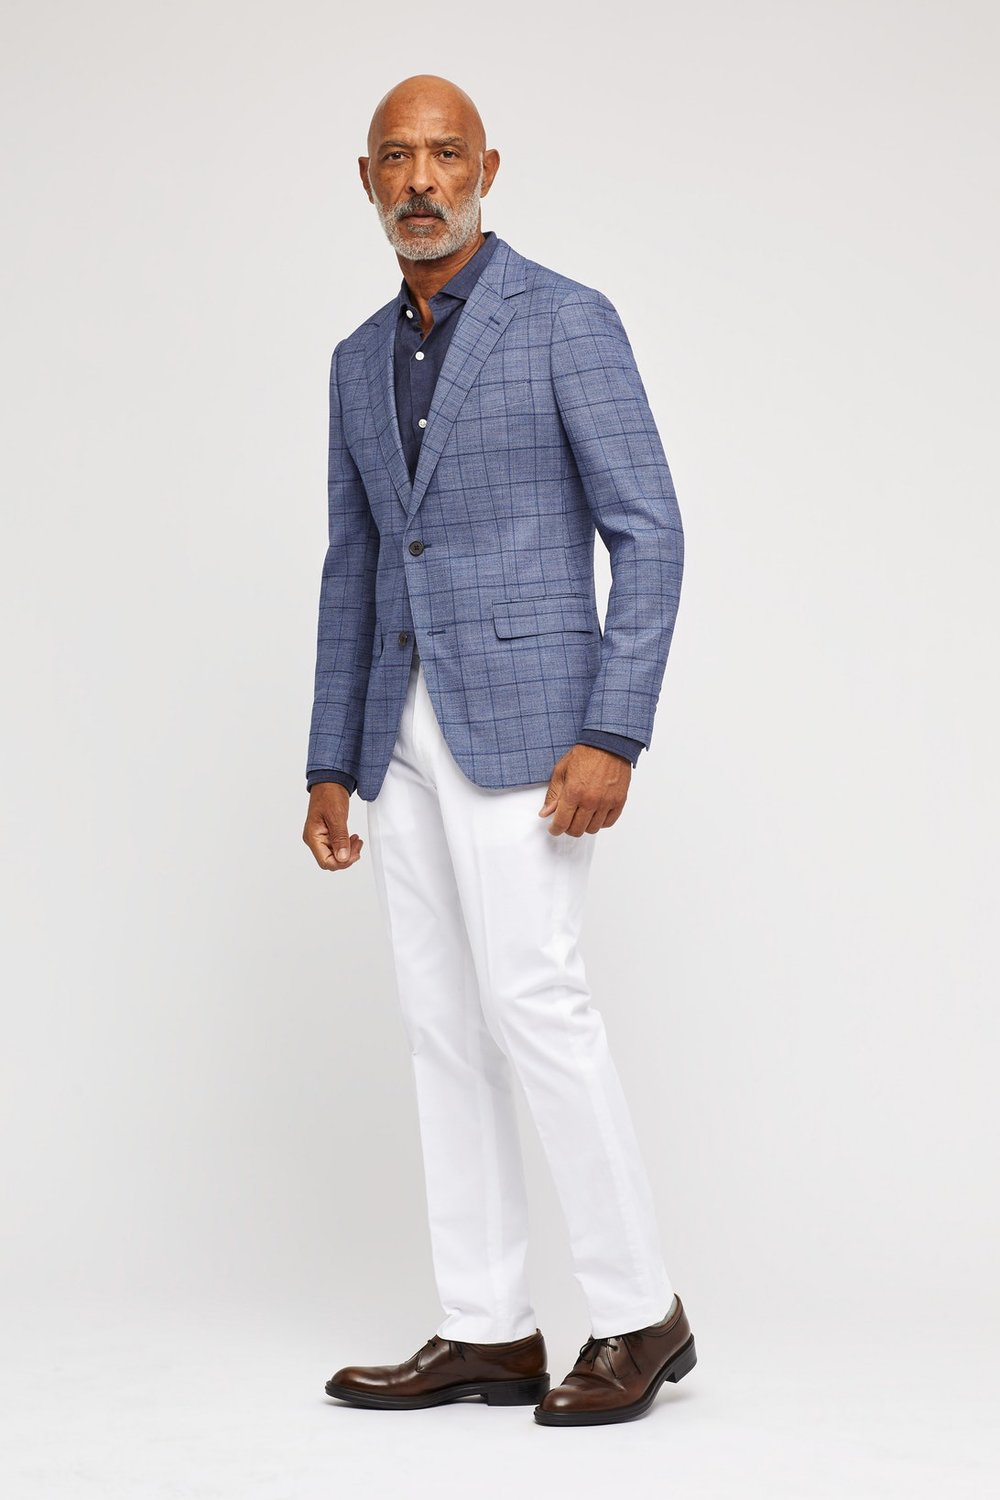 Bonobos Jetsetter Blazer - A killer blazer for any occasion.